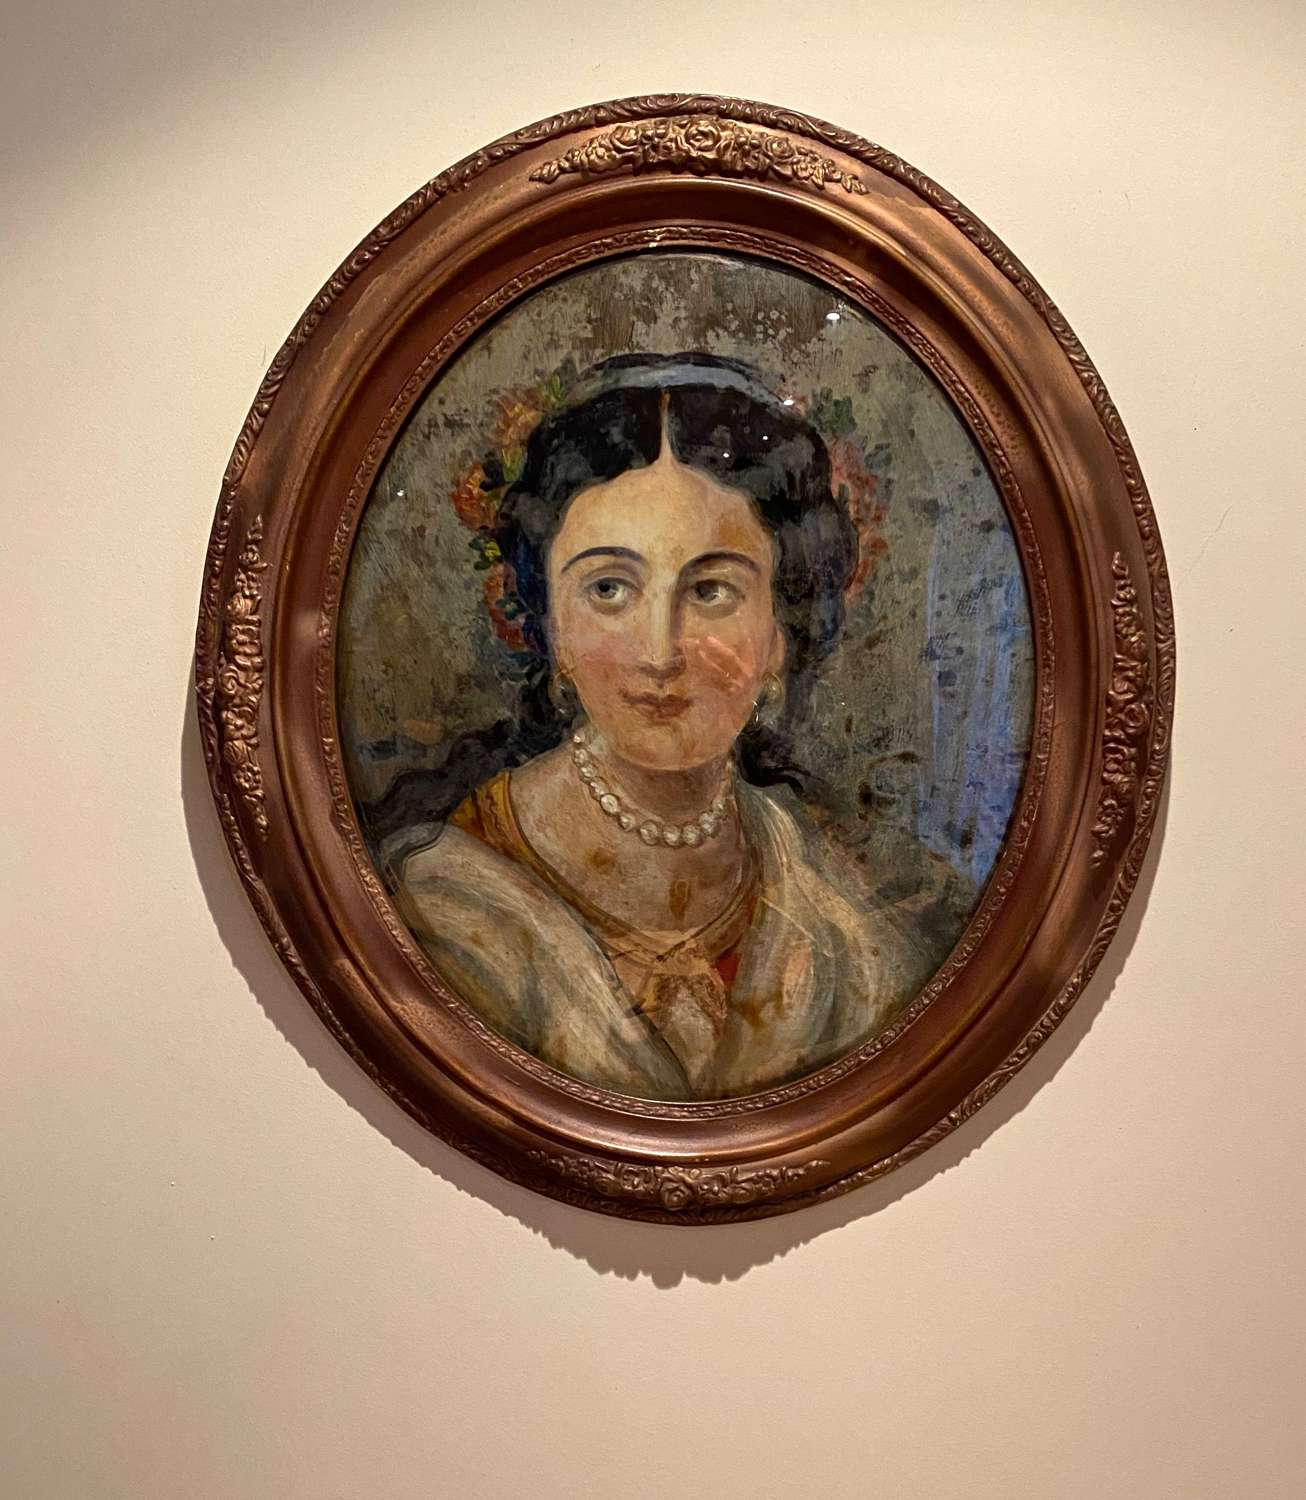 Early 20th century reverse glass painting of lady in oval frame